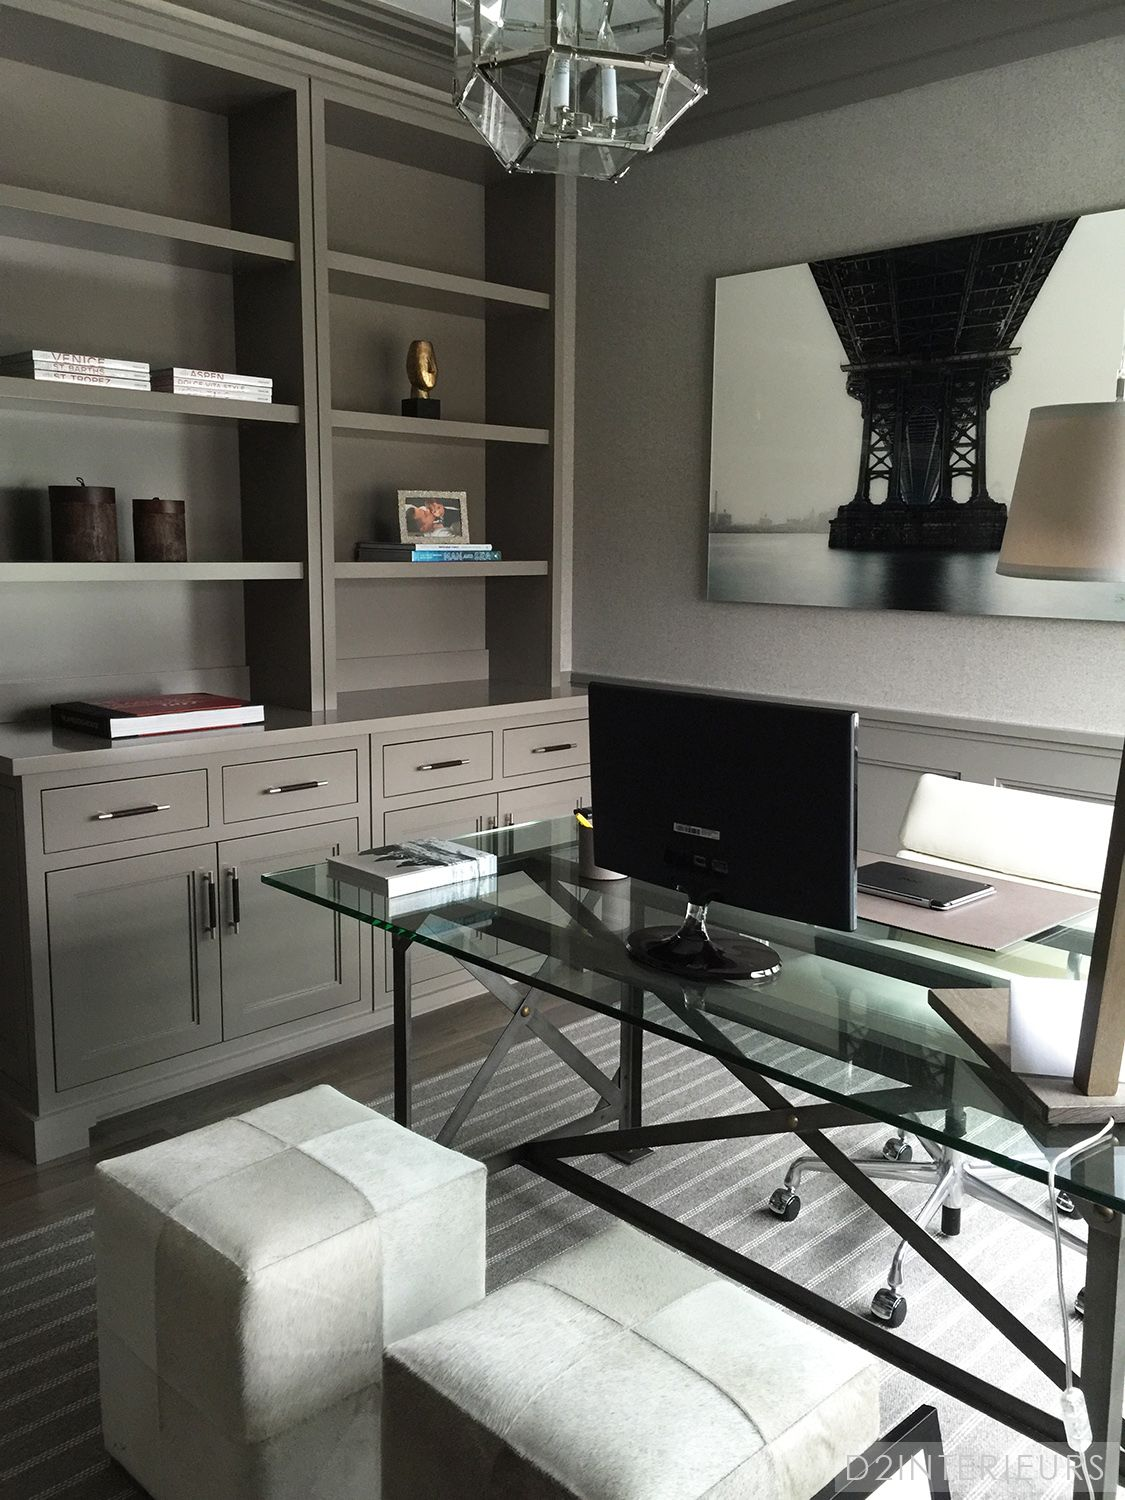 office space colors. A Desk Made Of Glass And Metal Is Functional Stylish In This Home Office Without Feeling Bulky Or Visually Crowding The Room. Space Colors